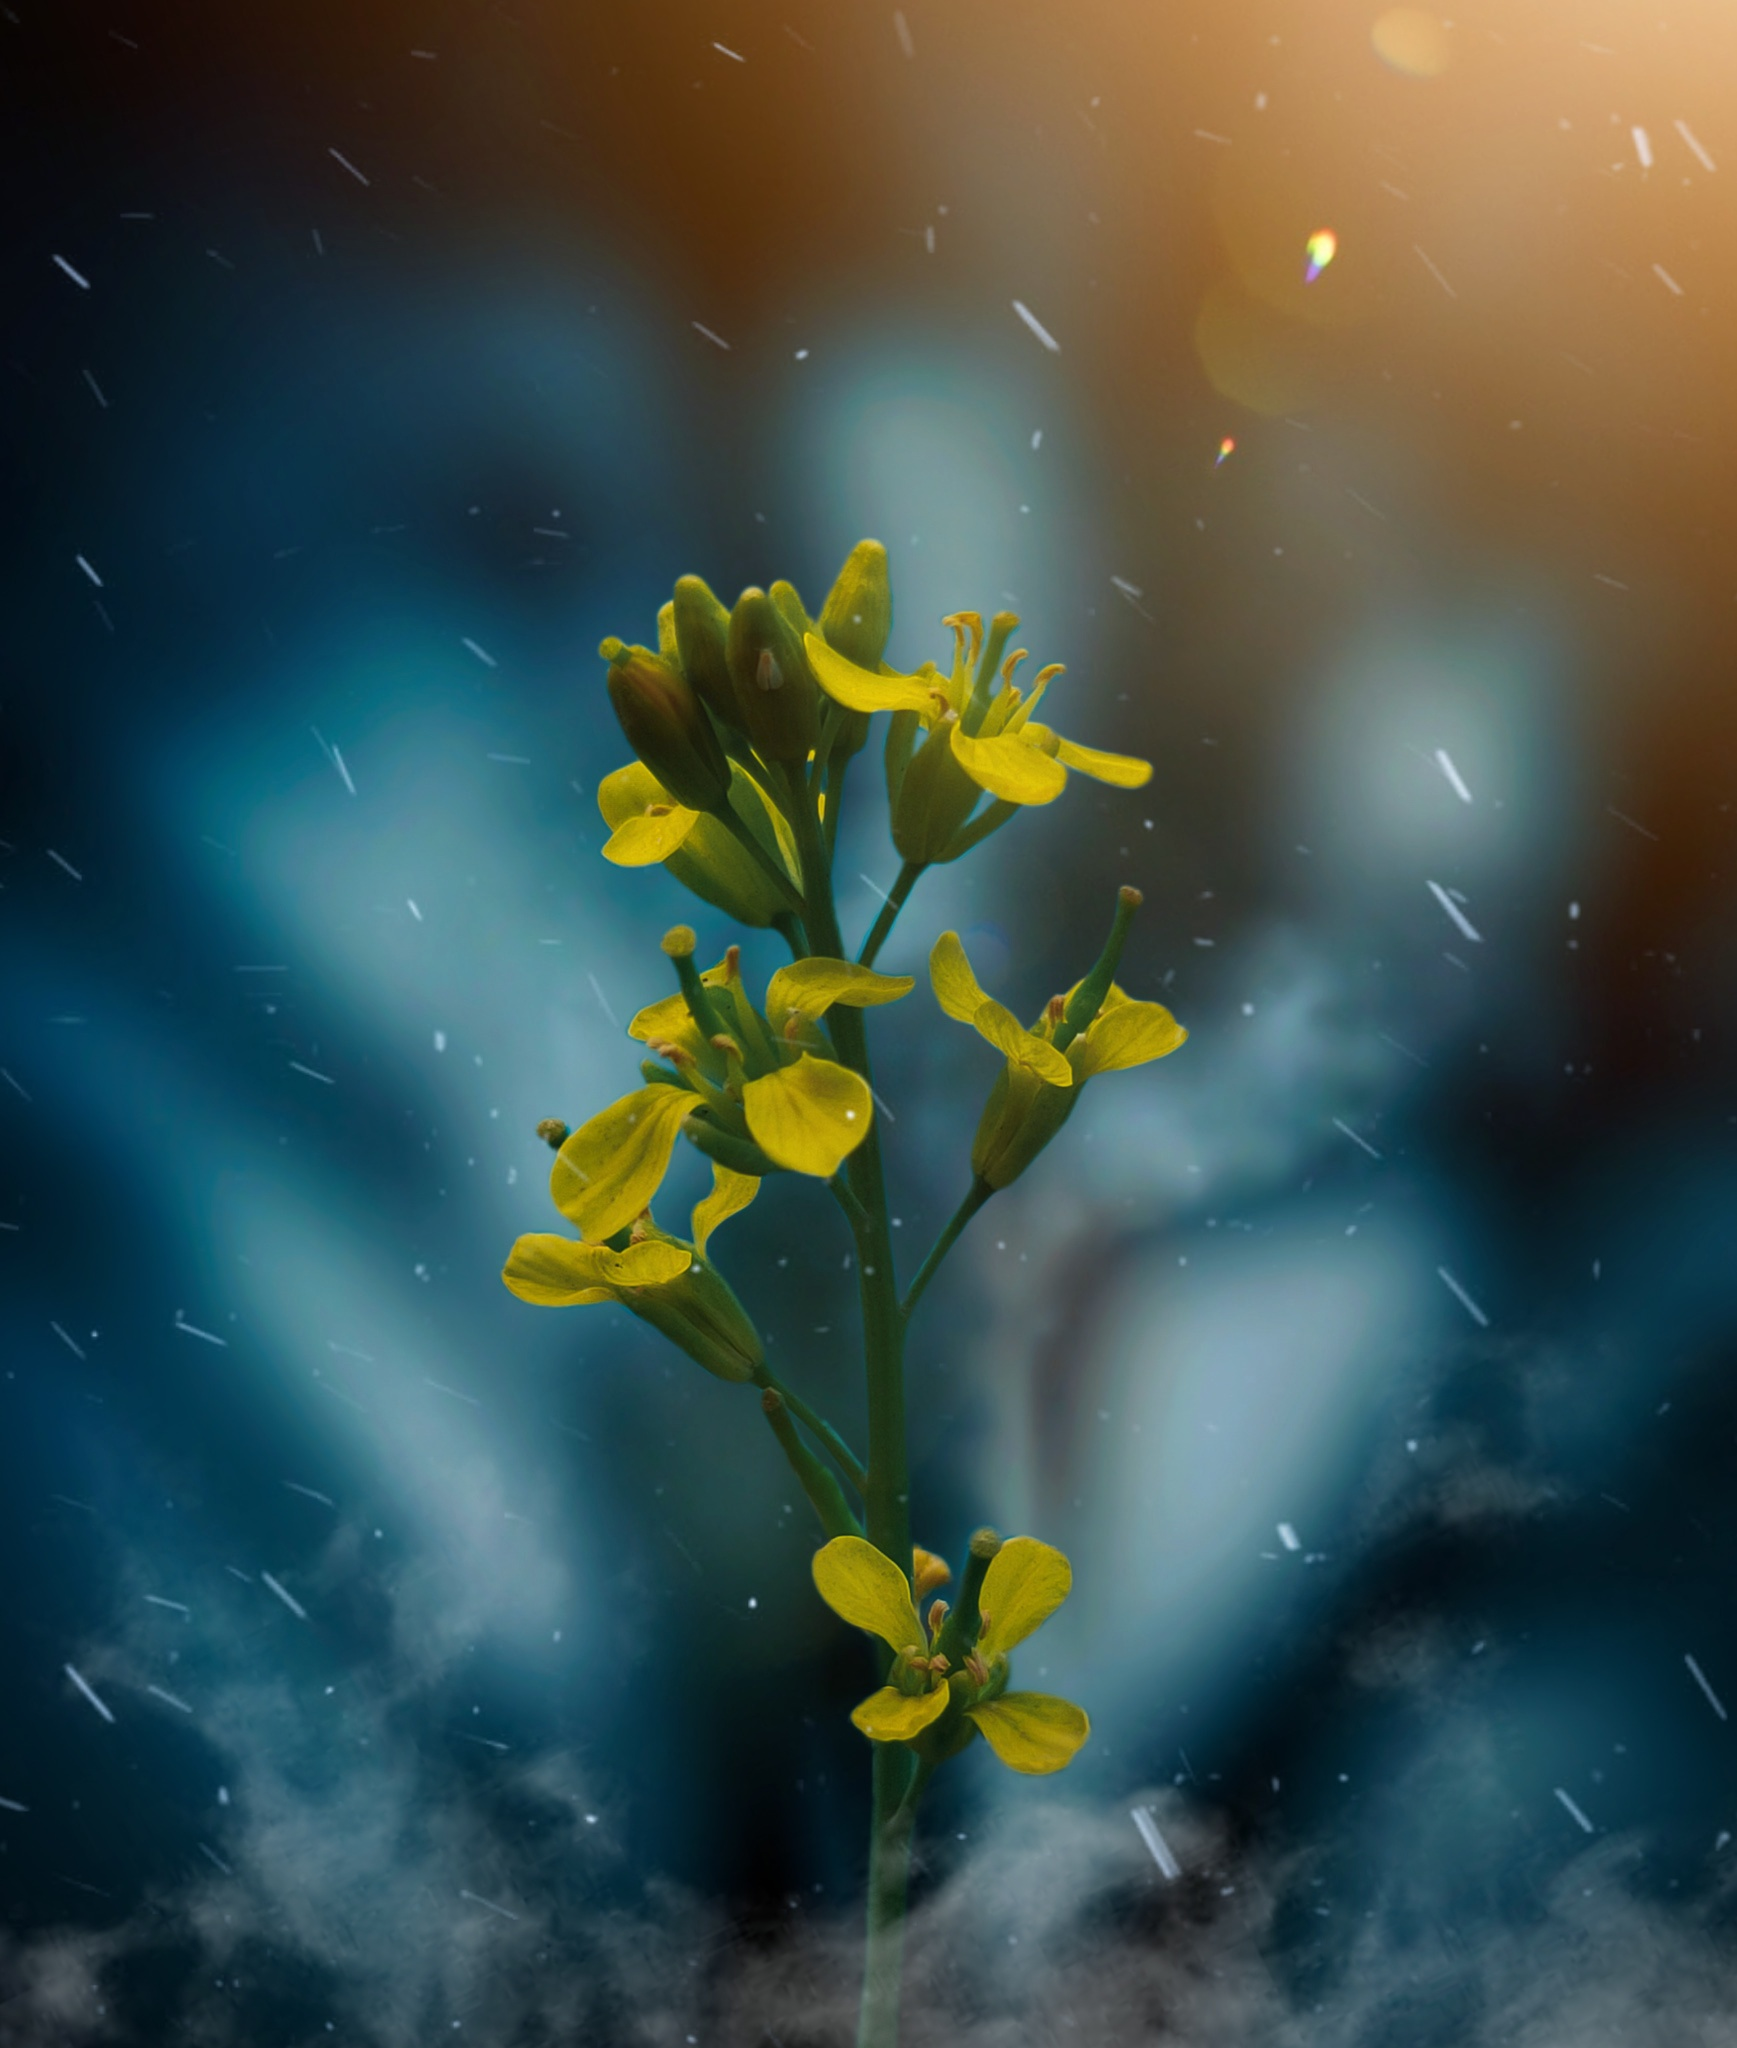 Creative editing of flower picture